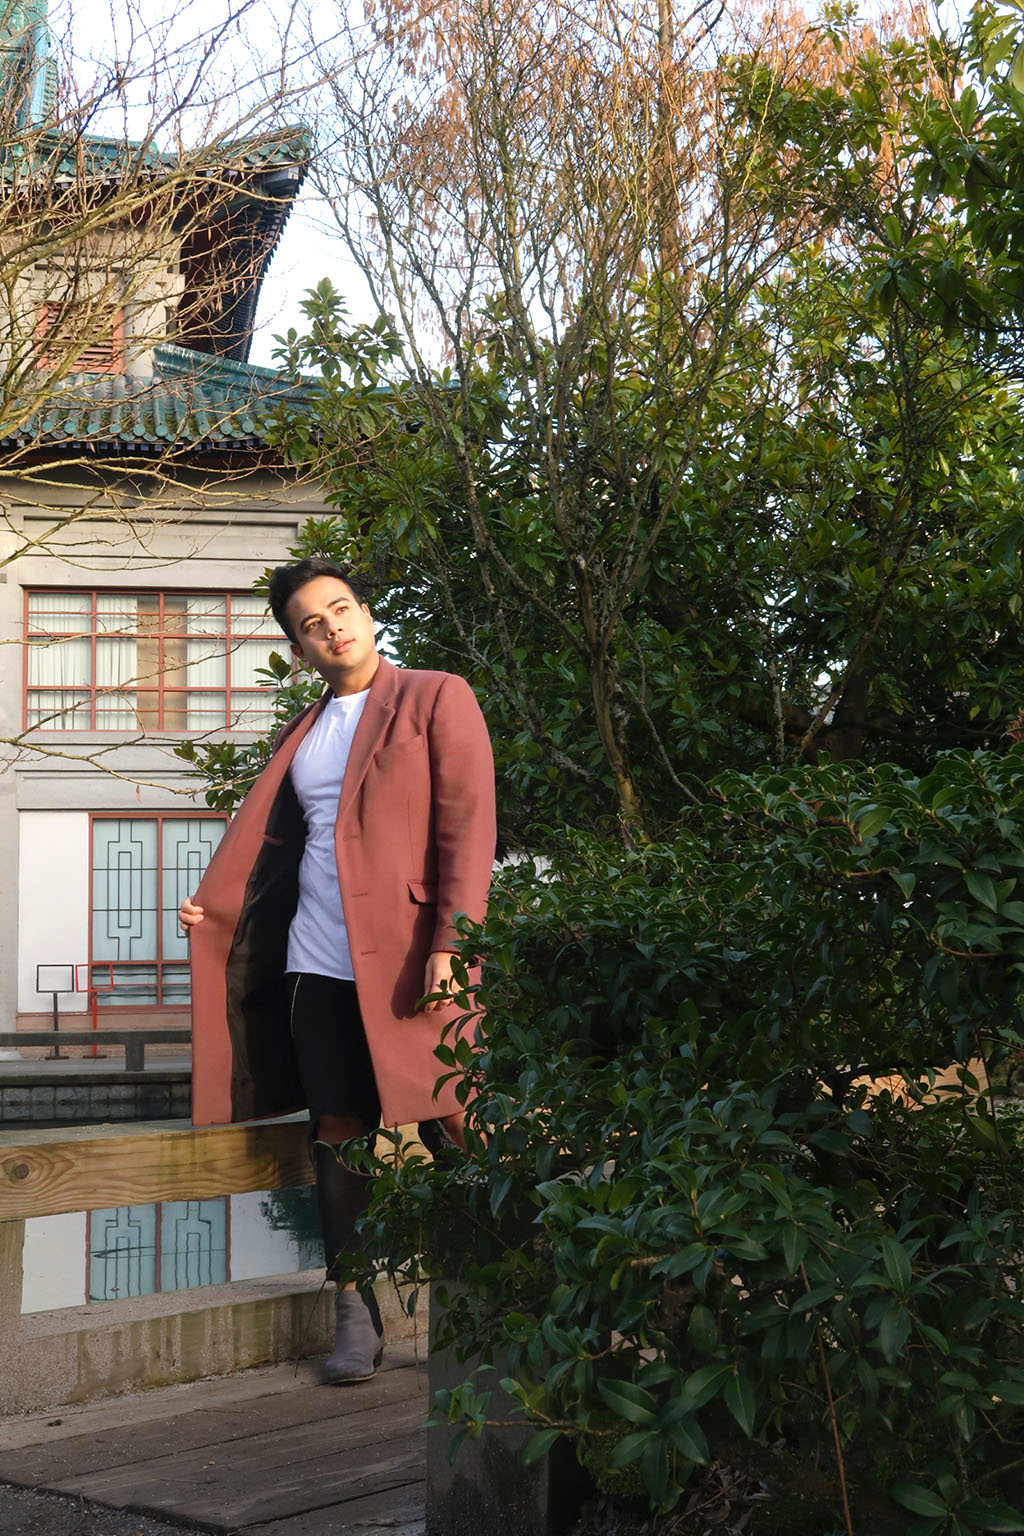 Jonathan Waiching Ho_Travel To Vancouver_Visit China Town Vancouver_Mens Fashion_Style Influencer_2